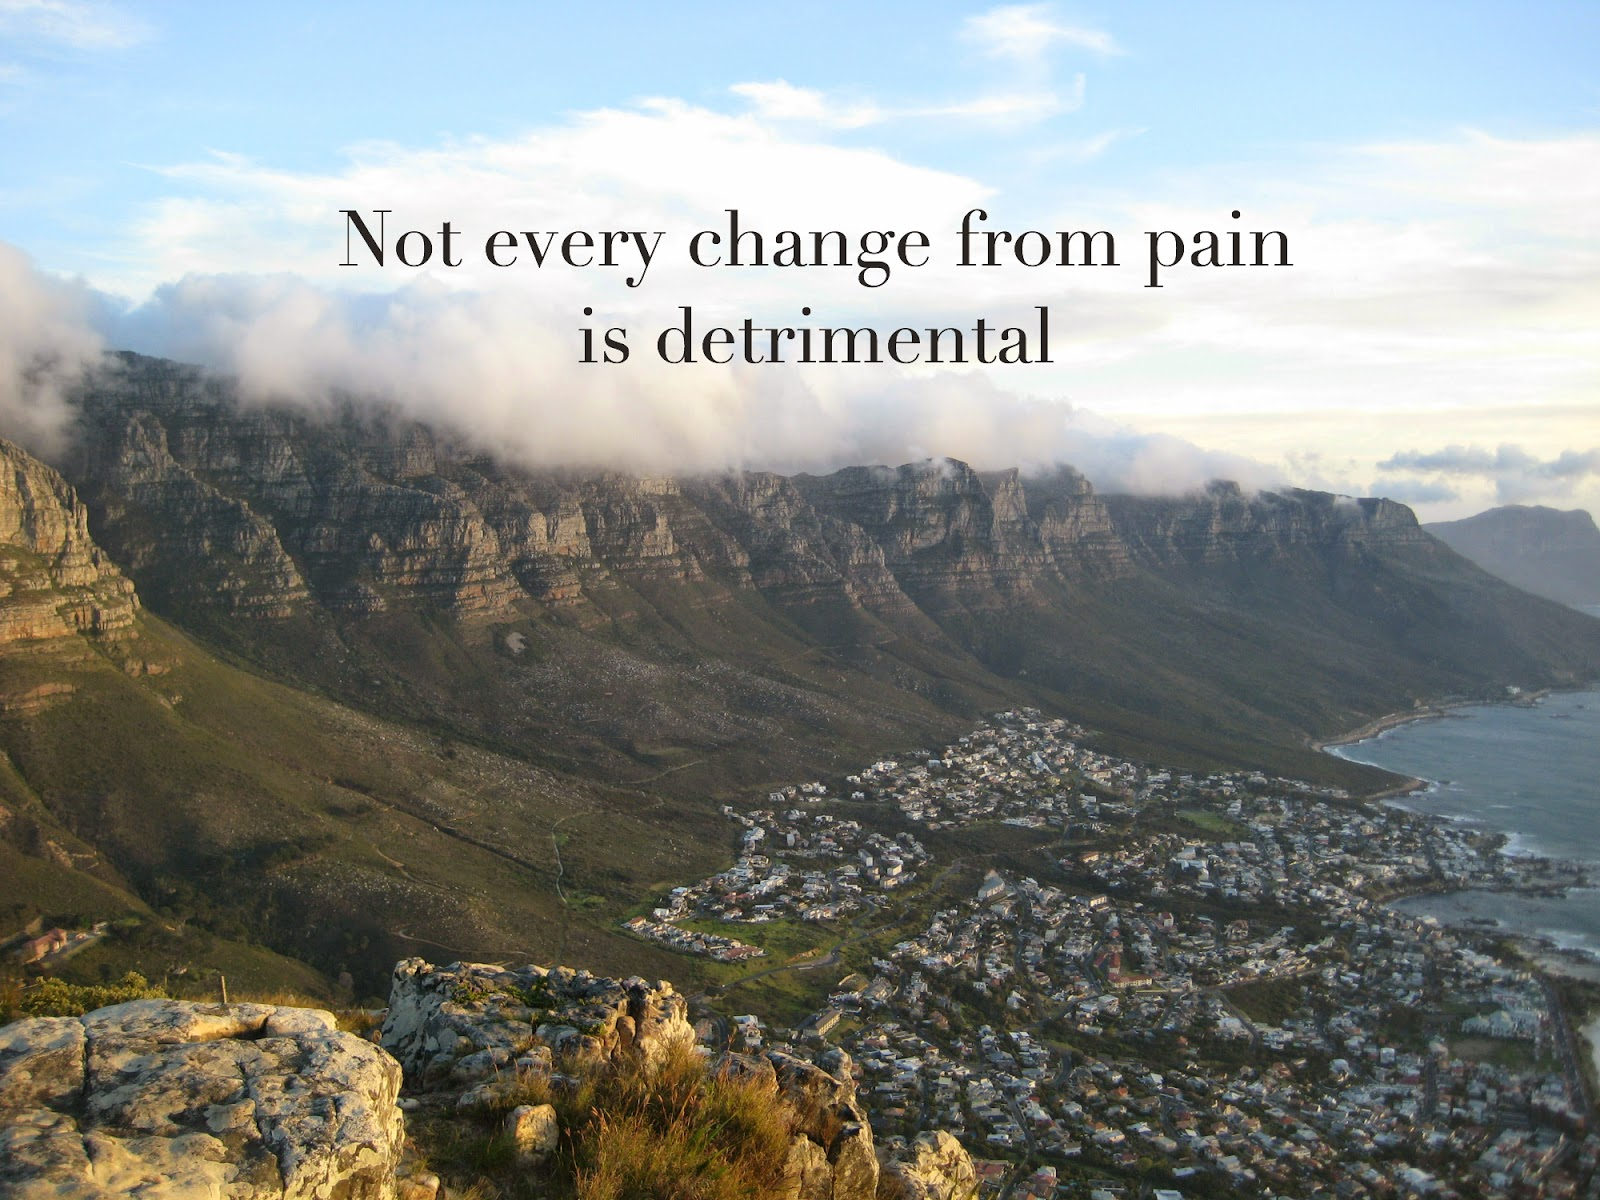 Not every change from pain is detrimental